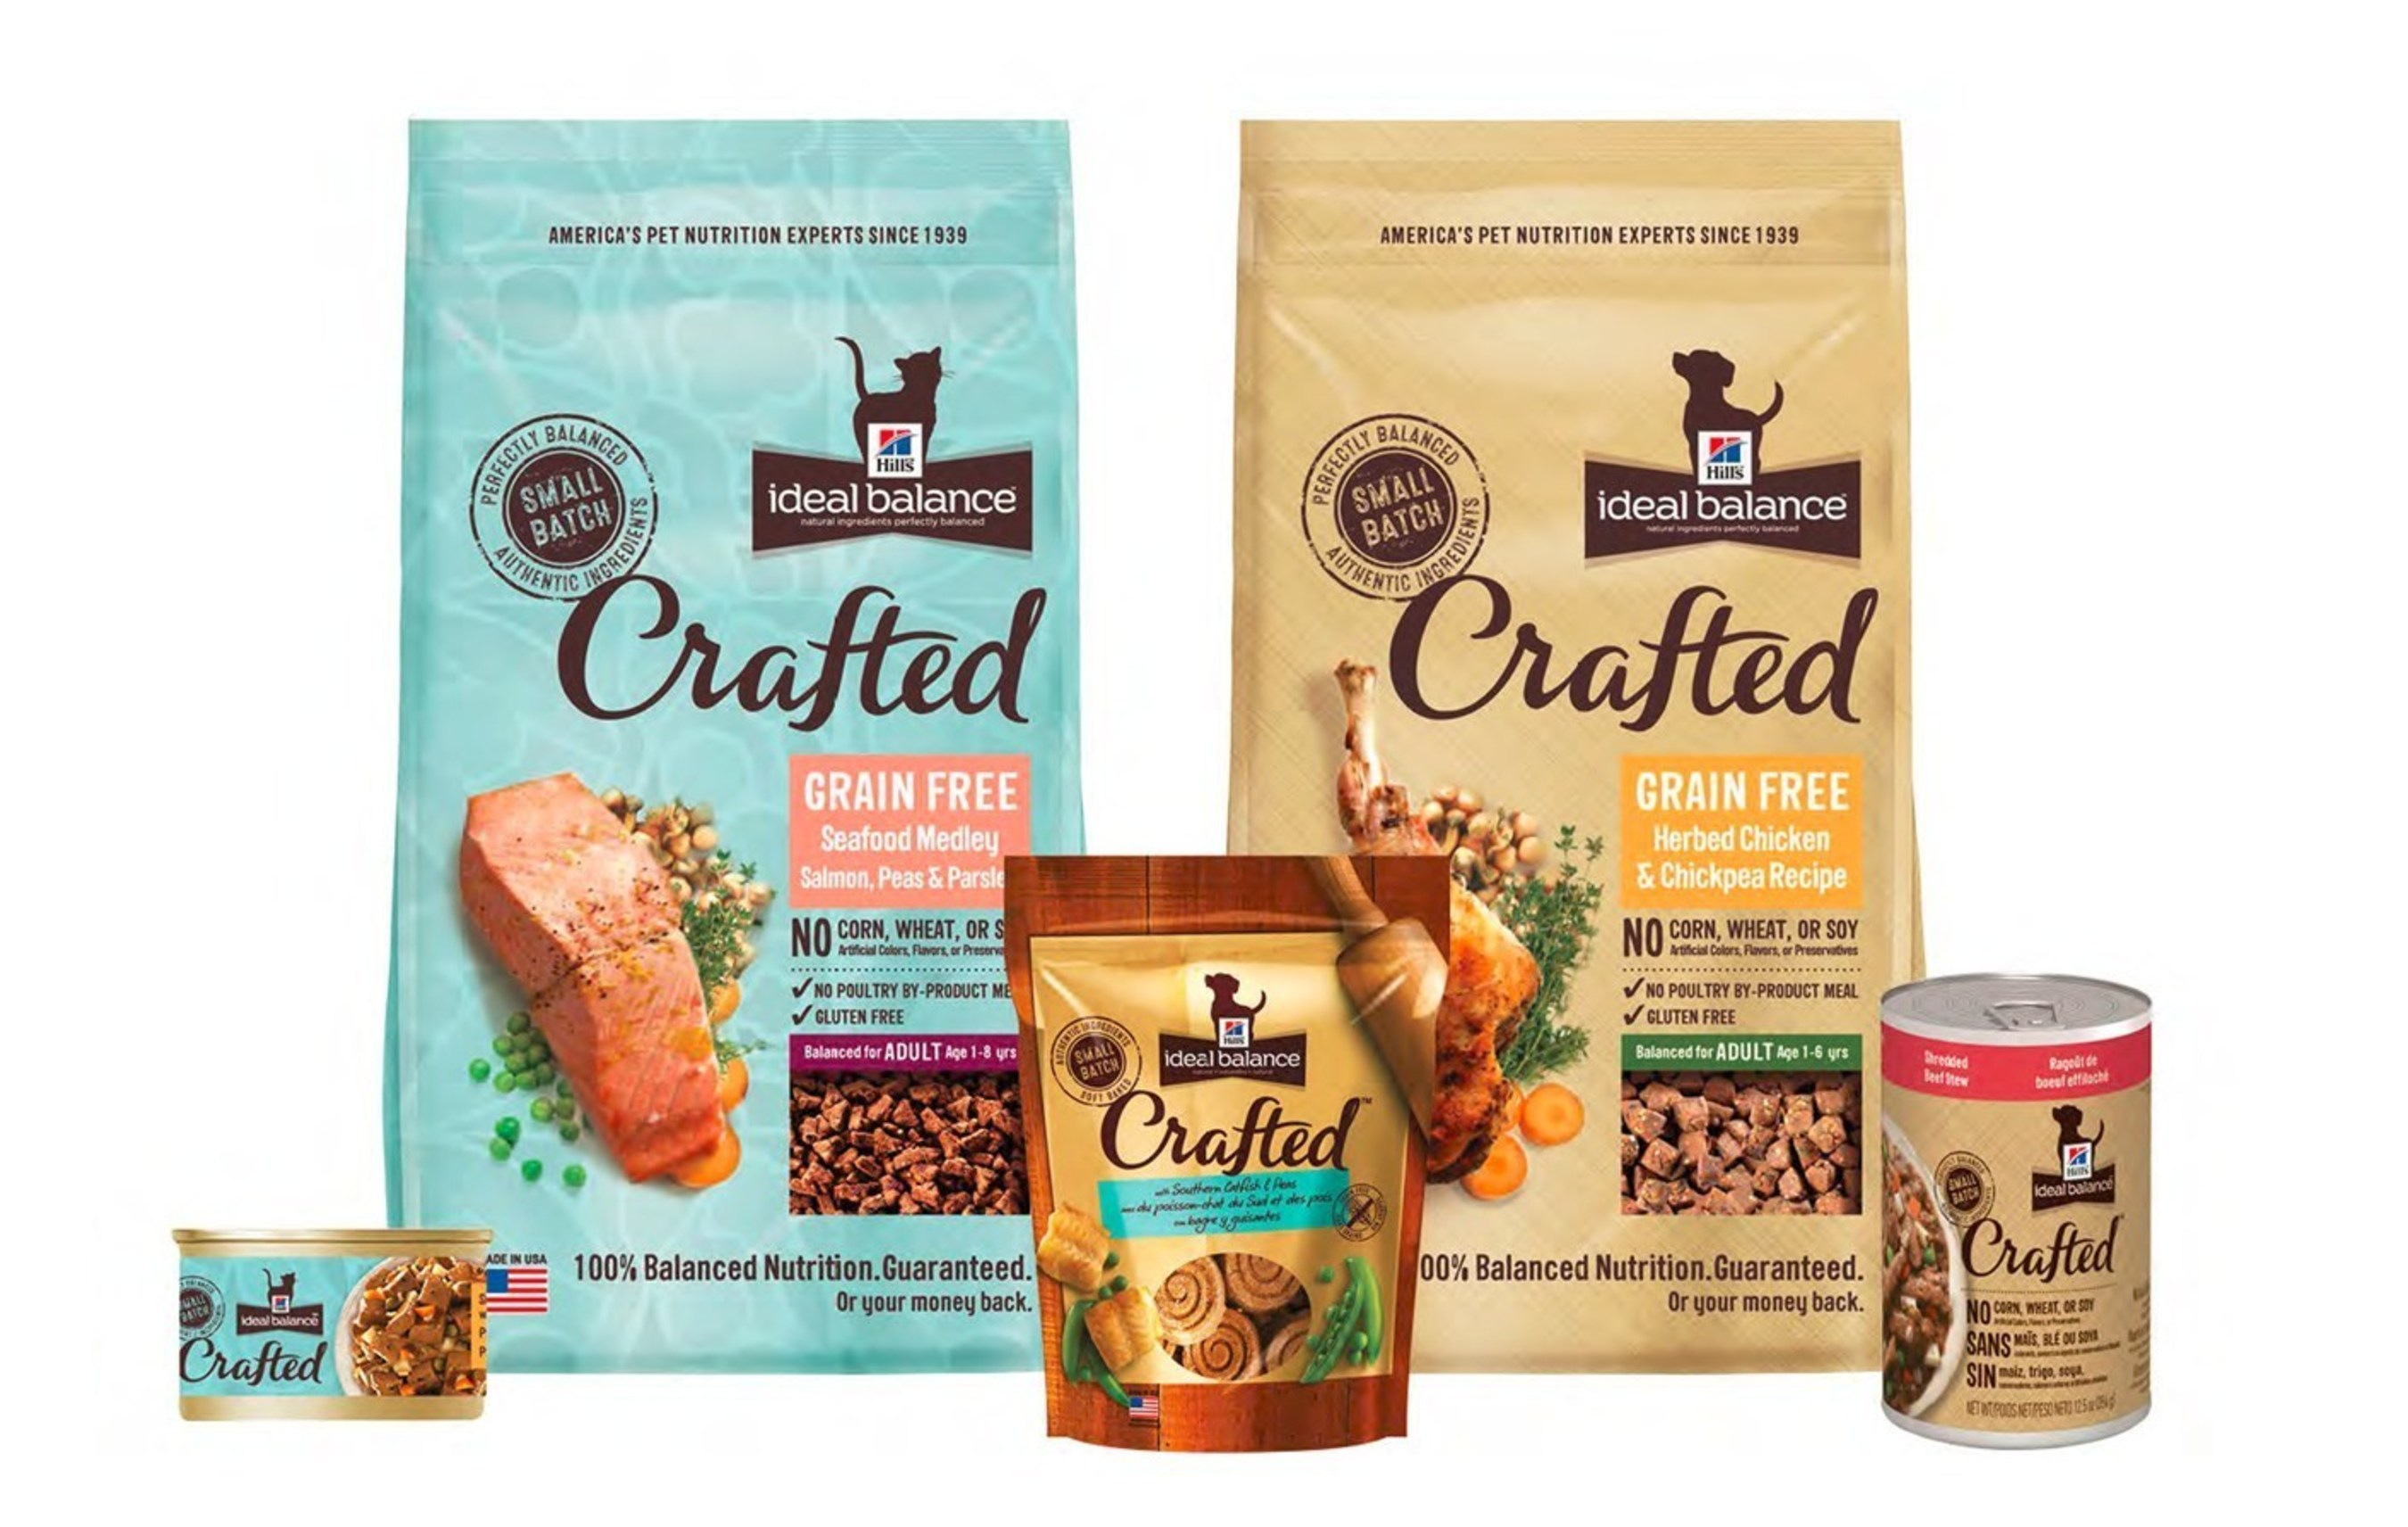 Hill's Pet Nutrition introduces Ideal Balance Crafted